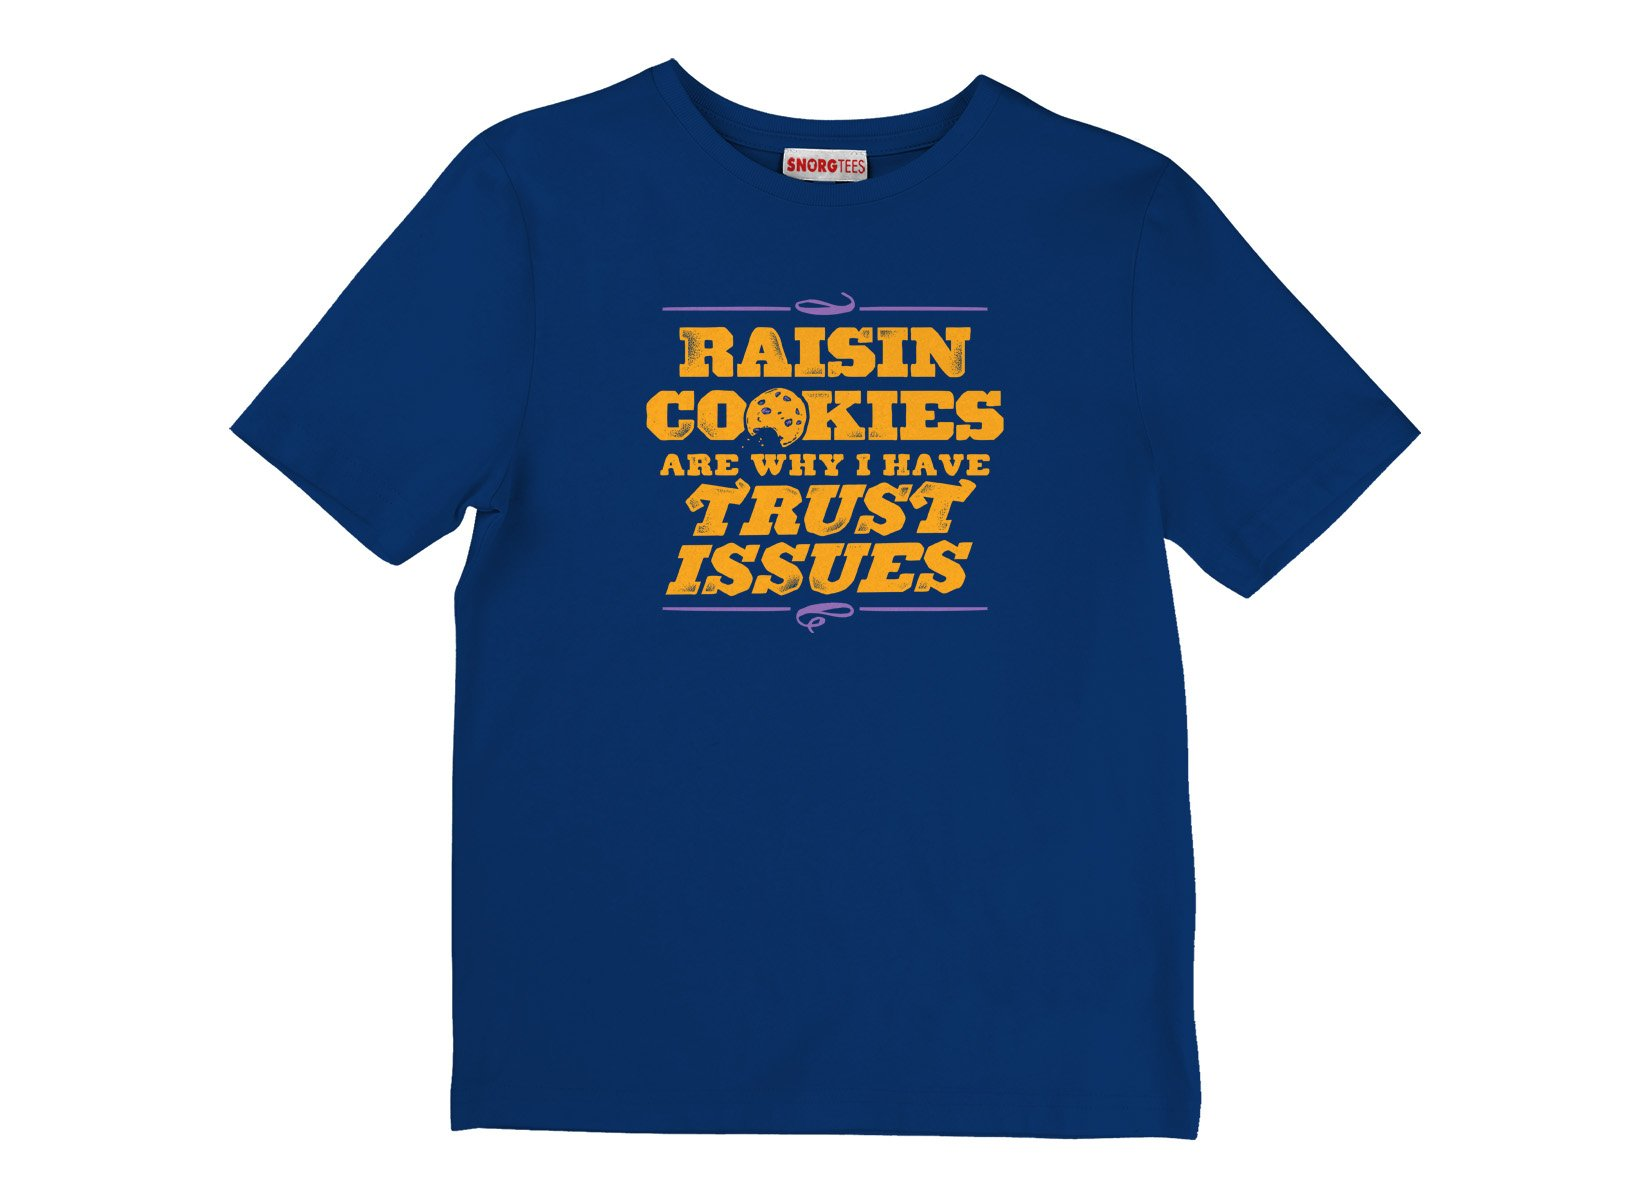 Raisin Cookies Are Why I Have Trust Issues on Kids T-Shirt